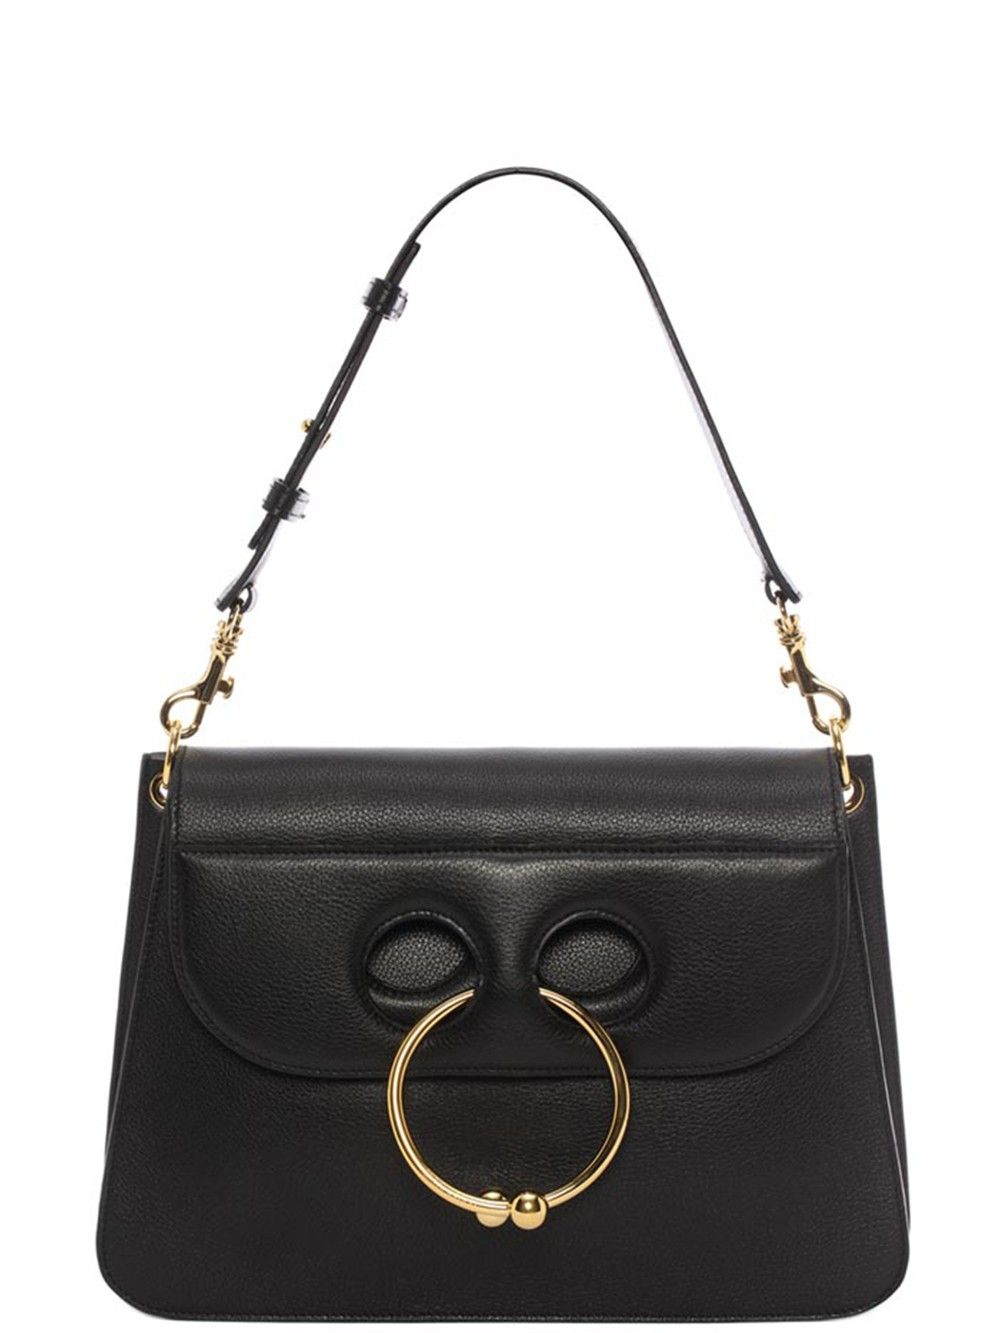 c54f7b04f0 Loving this J.W.Anderson bag! It is becoming so popular.